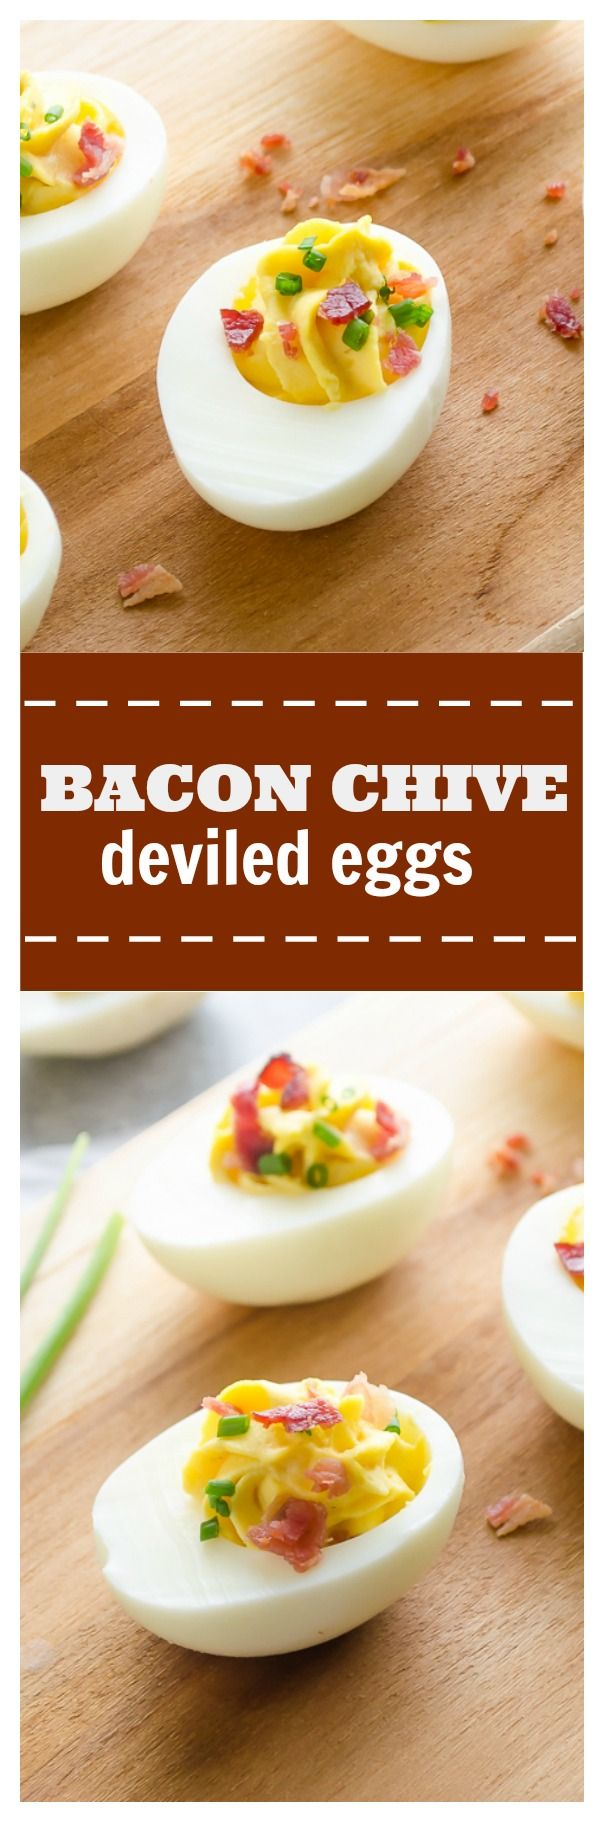 255 best images about Deviled Eggs on Pinterest ...